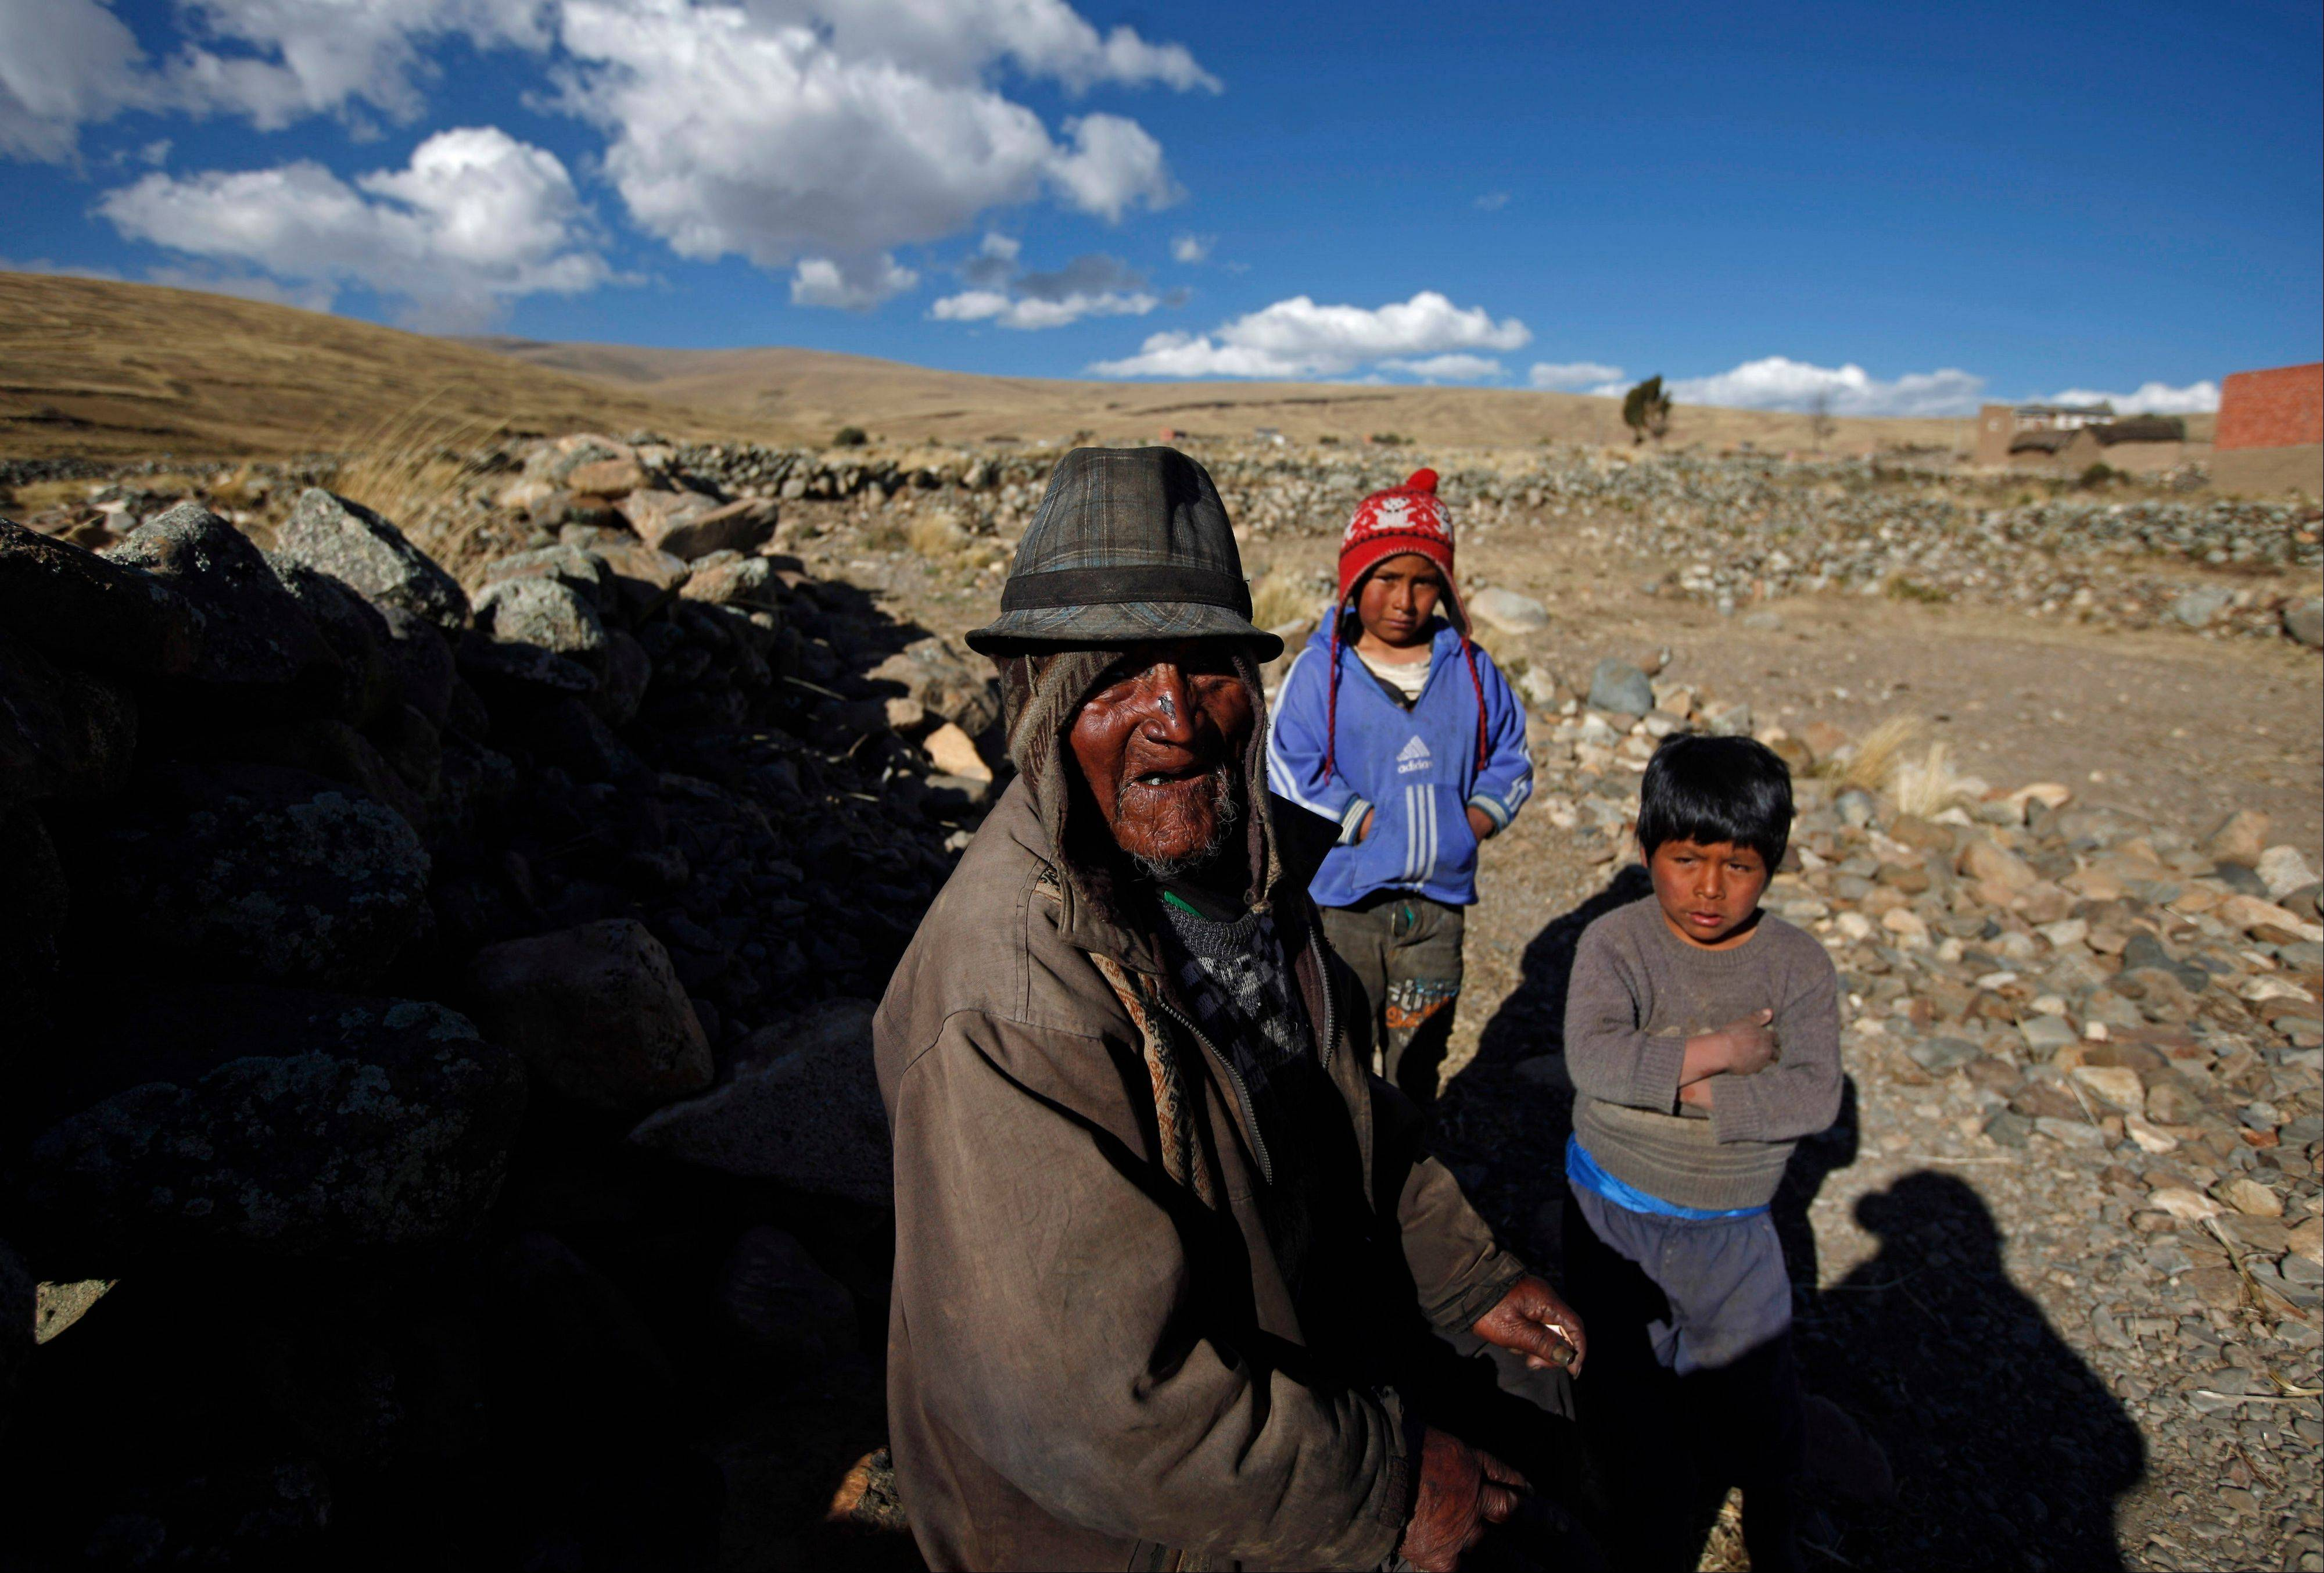 Carmelo Flores Laura, a native Aymara, poses for a photo with his great-grandchildren outside his home in the village of Frasquia, Bolivia, Tuesday, Aug. 13, 2013. If Bolivia�s public records are correct, Flores is the oldest living person ever documented. They say he turned 123 a month ago.